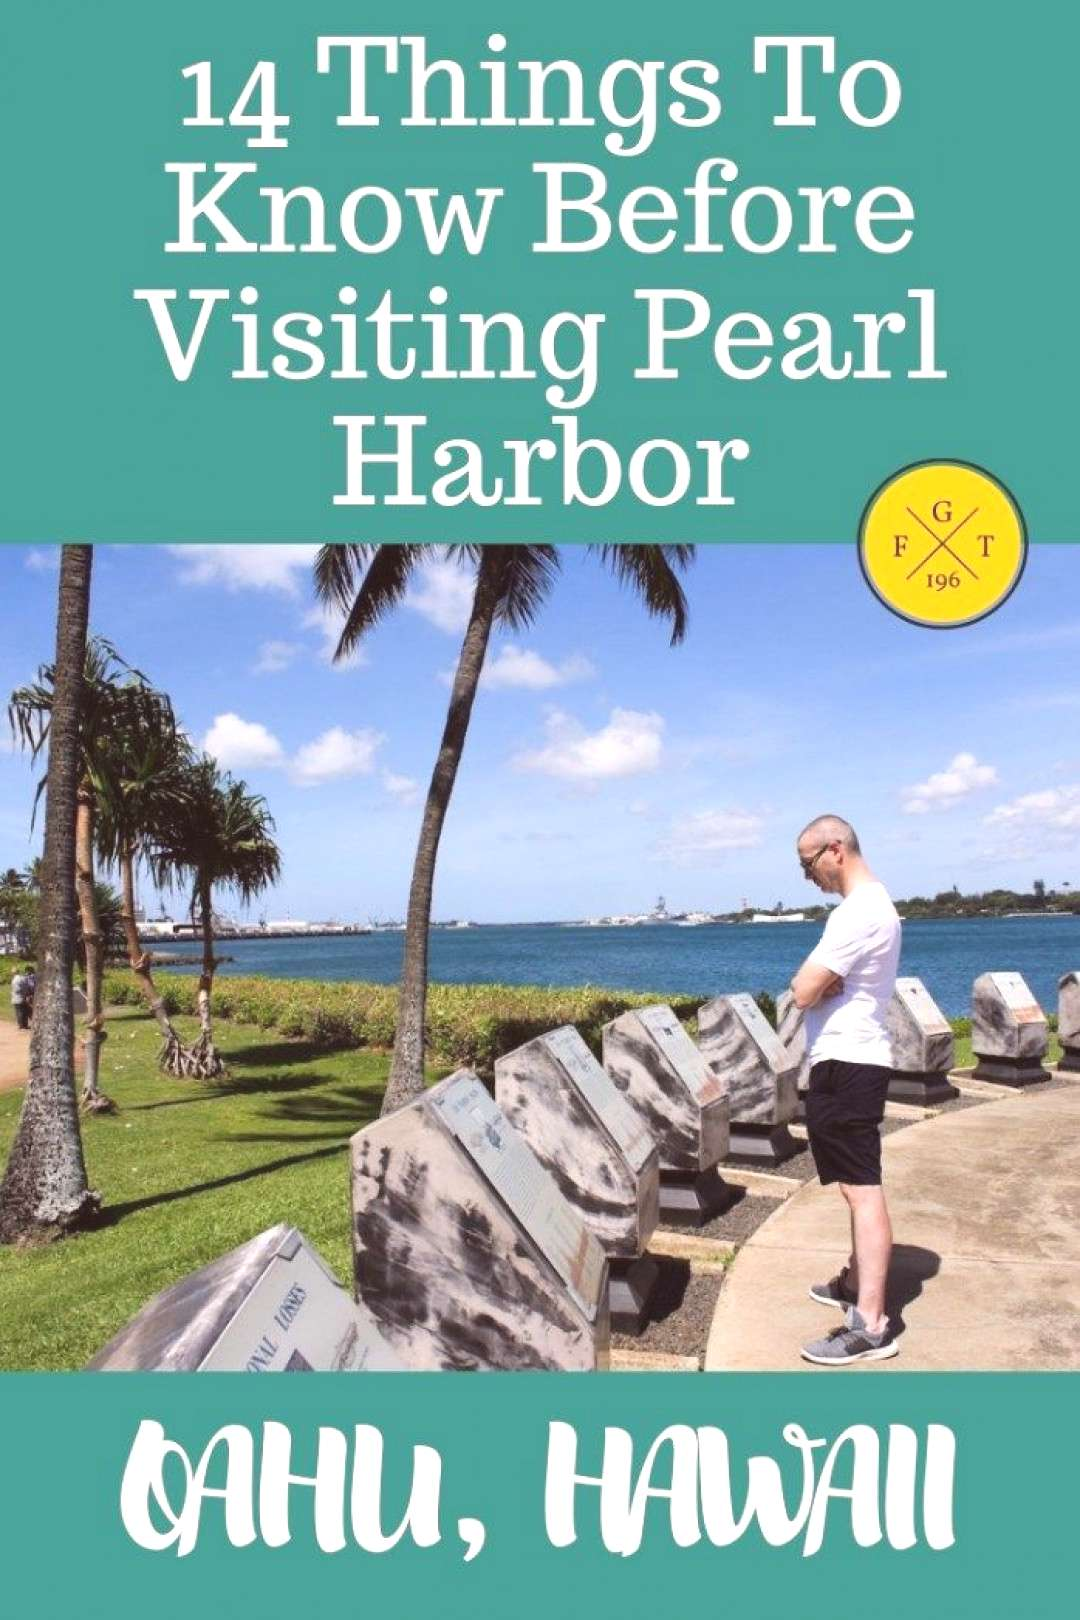 Pearl Harbor memorial is a must visit when in Oahu. It is an important part of Hawaiian culture and